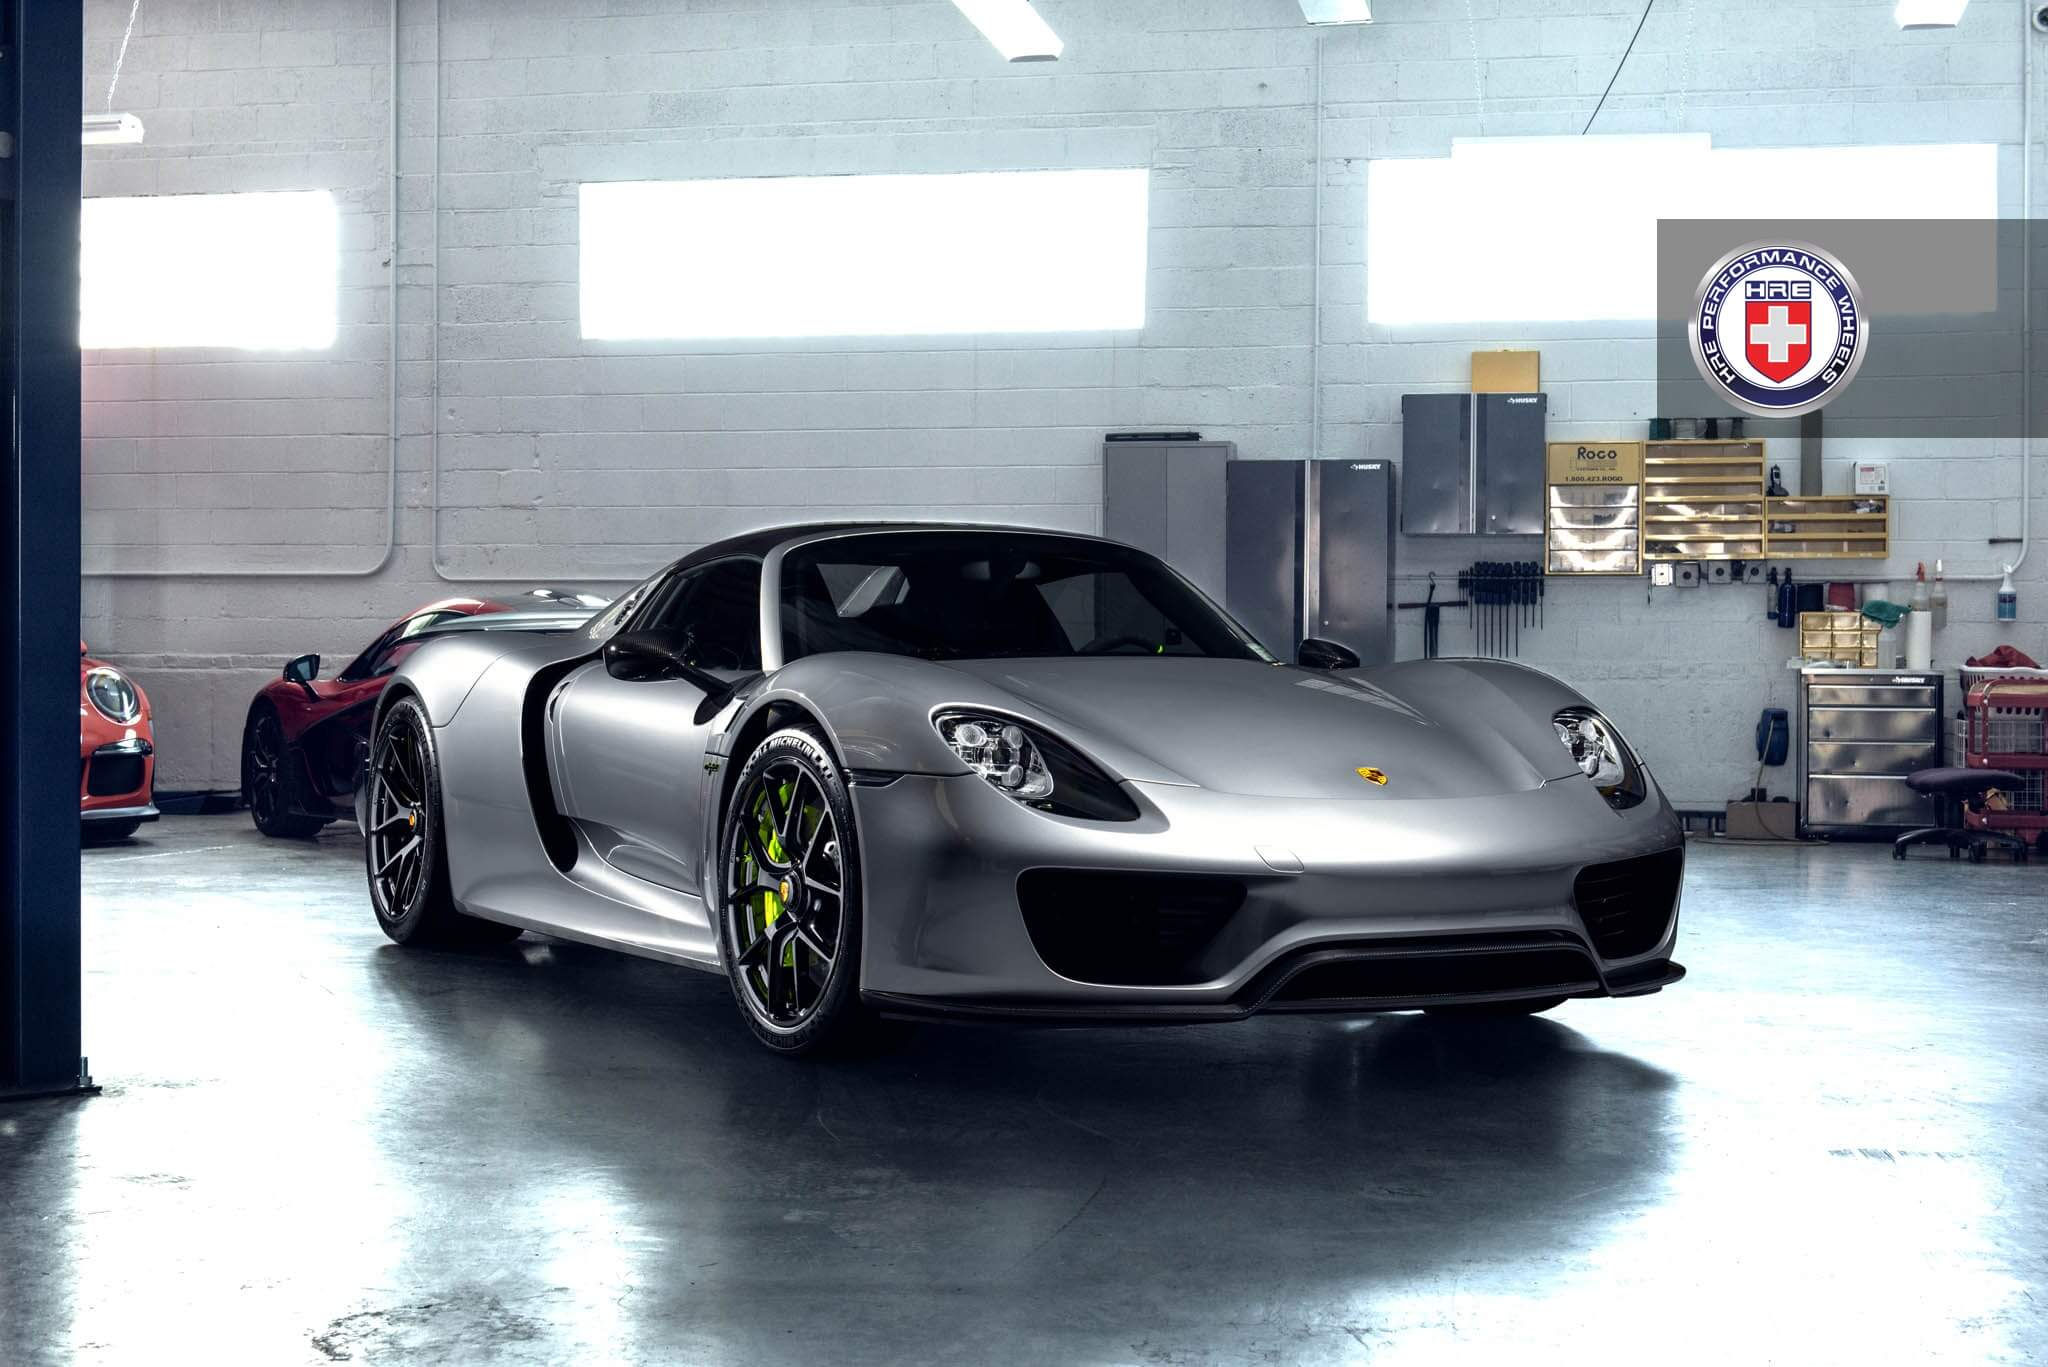 100 silver porsche spyder porsche review buy porsche 911 turbo s edition 918 spyder while. Black Bedroom Furniture Sets. Home Design Ideas